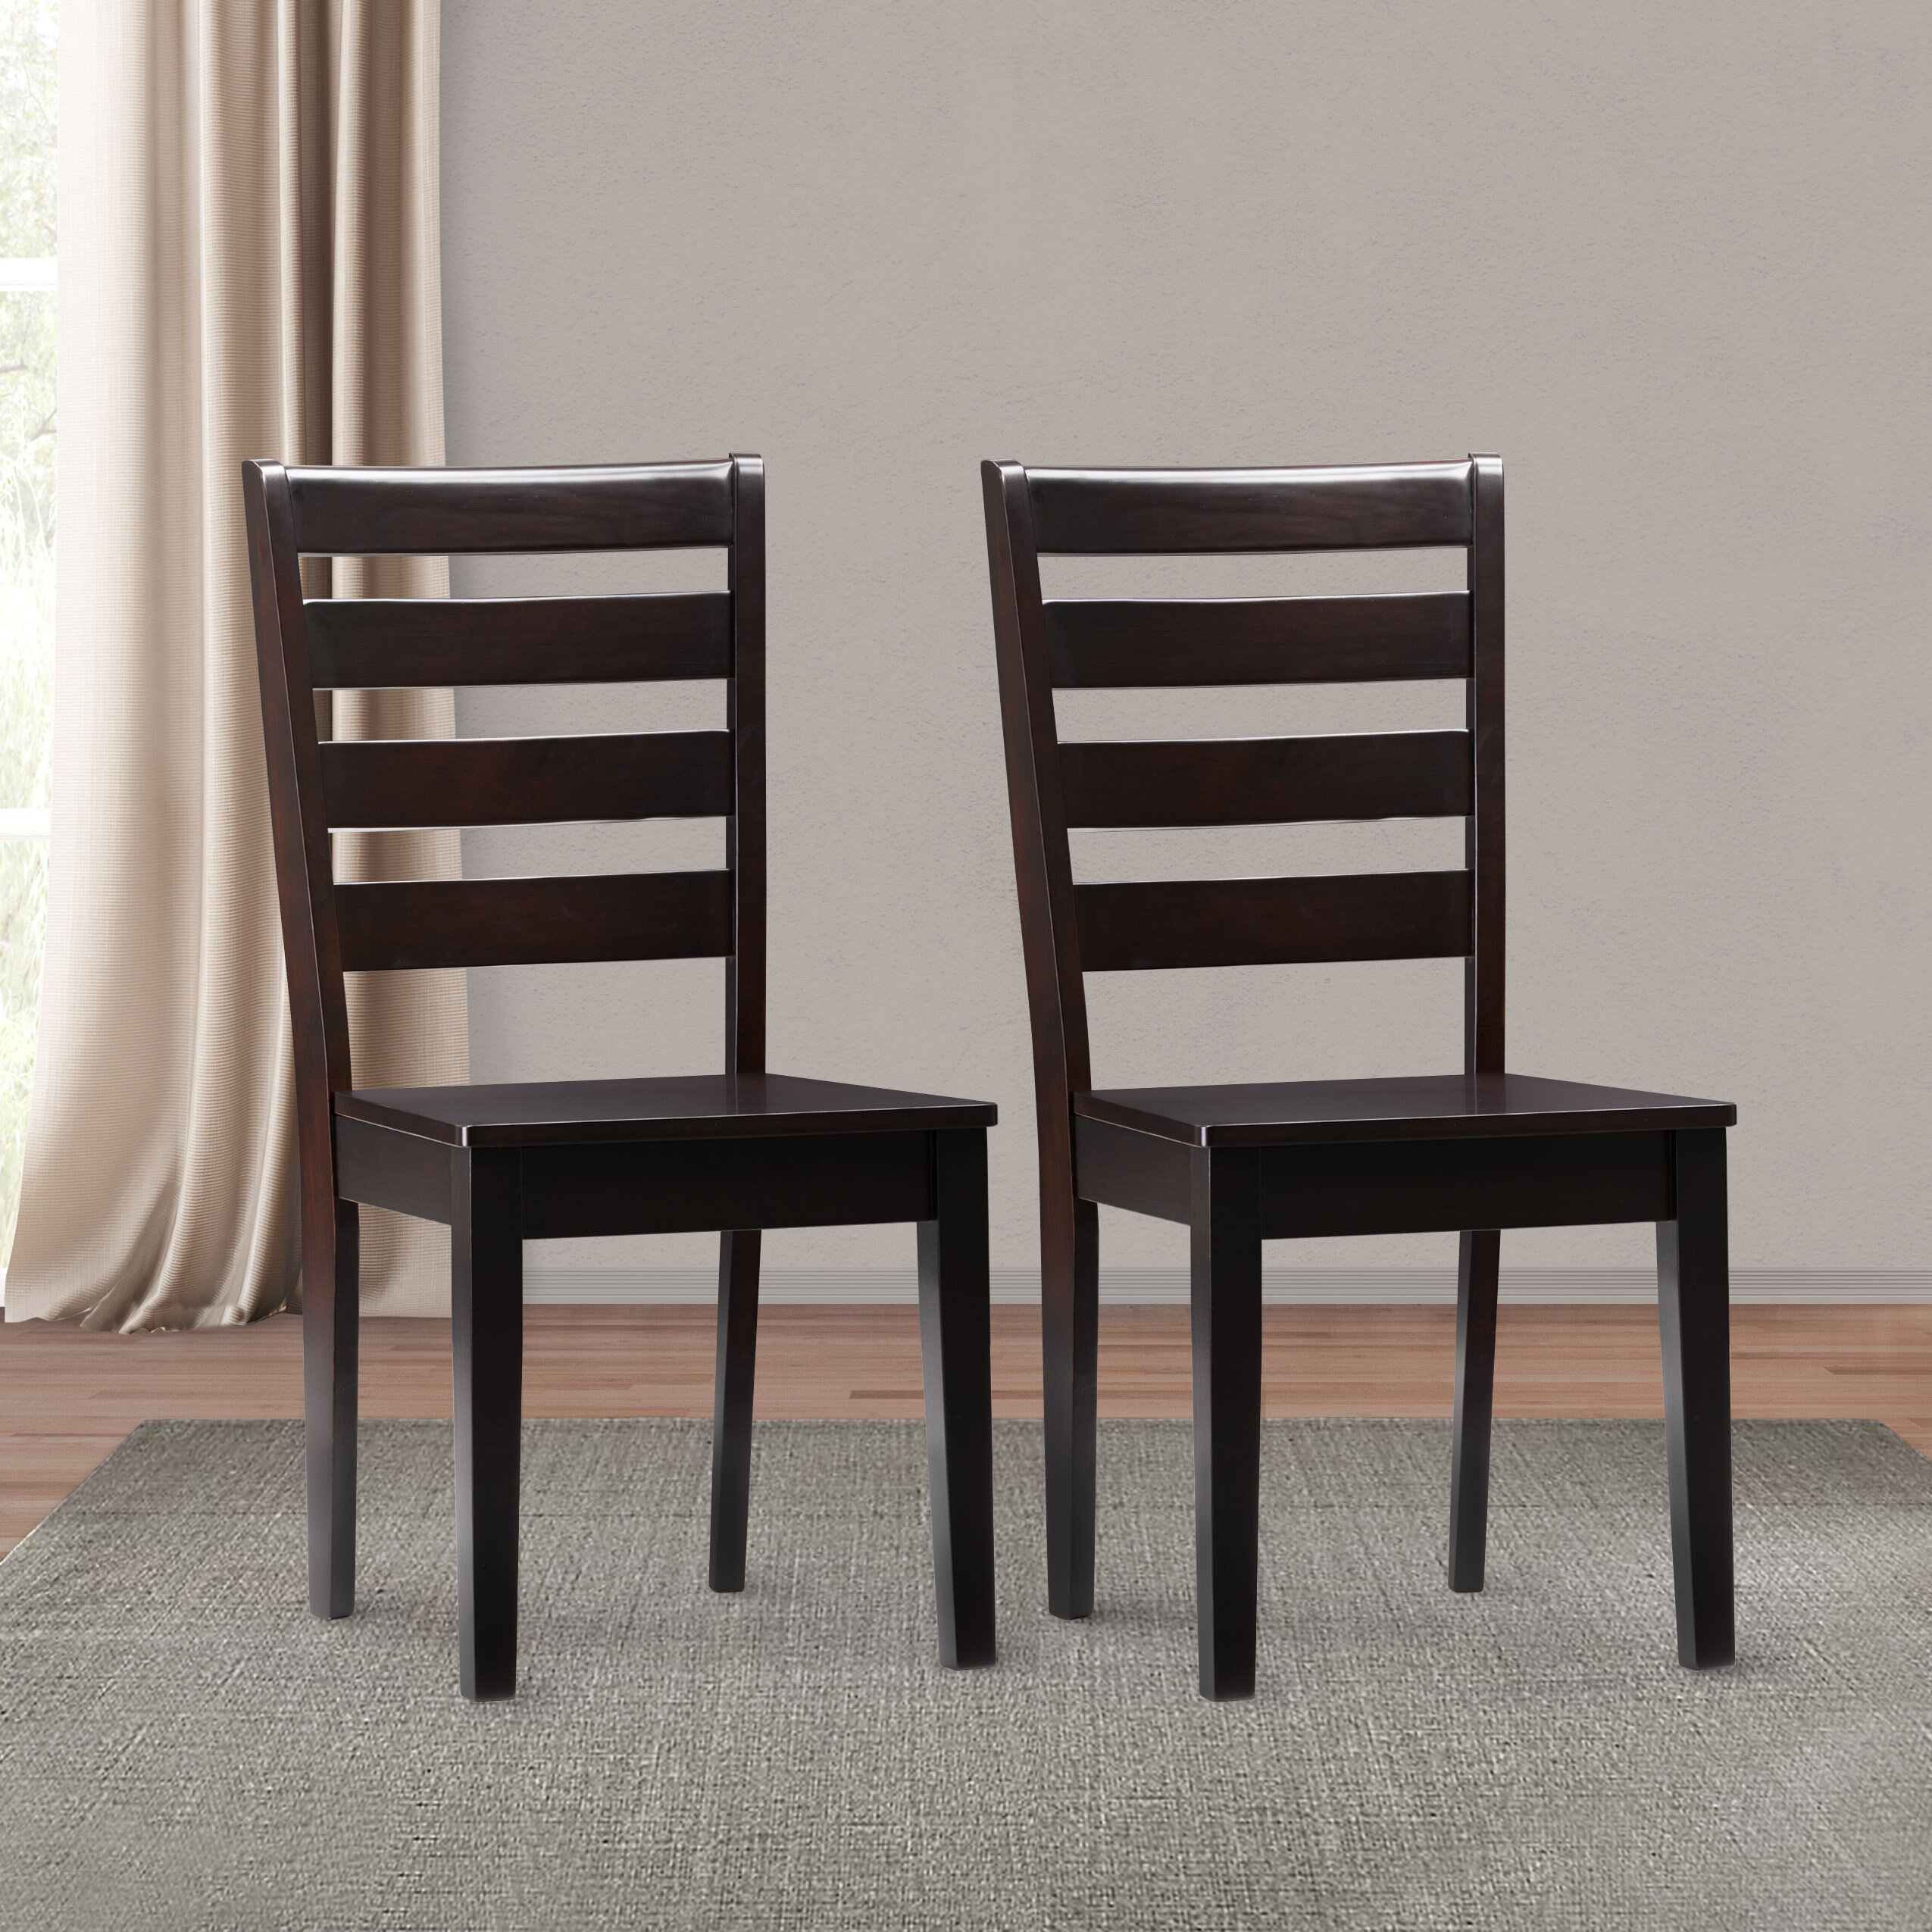 Goodman Solid Wood Dining Chair Intended For Latest Goodman 5 Piece Solid Wood Dining Sets (Set Of 5) (Image 12 of 20)